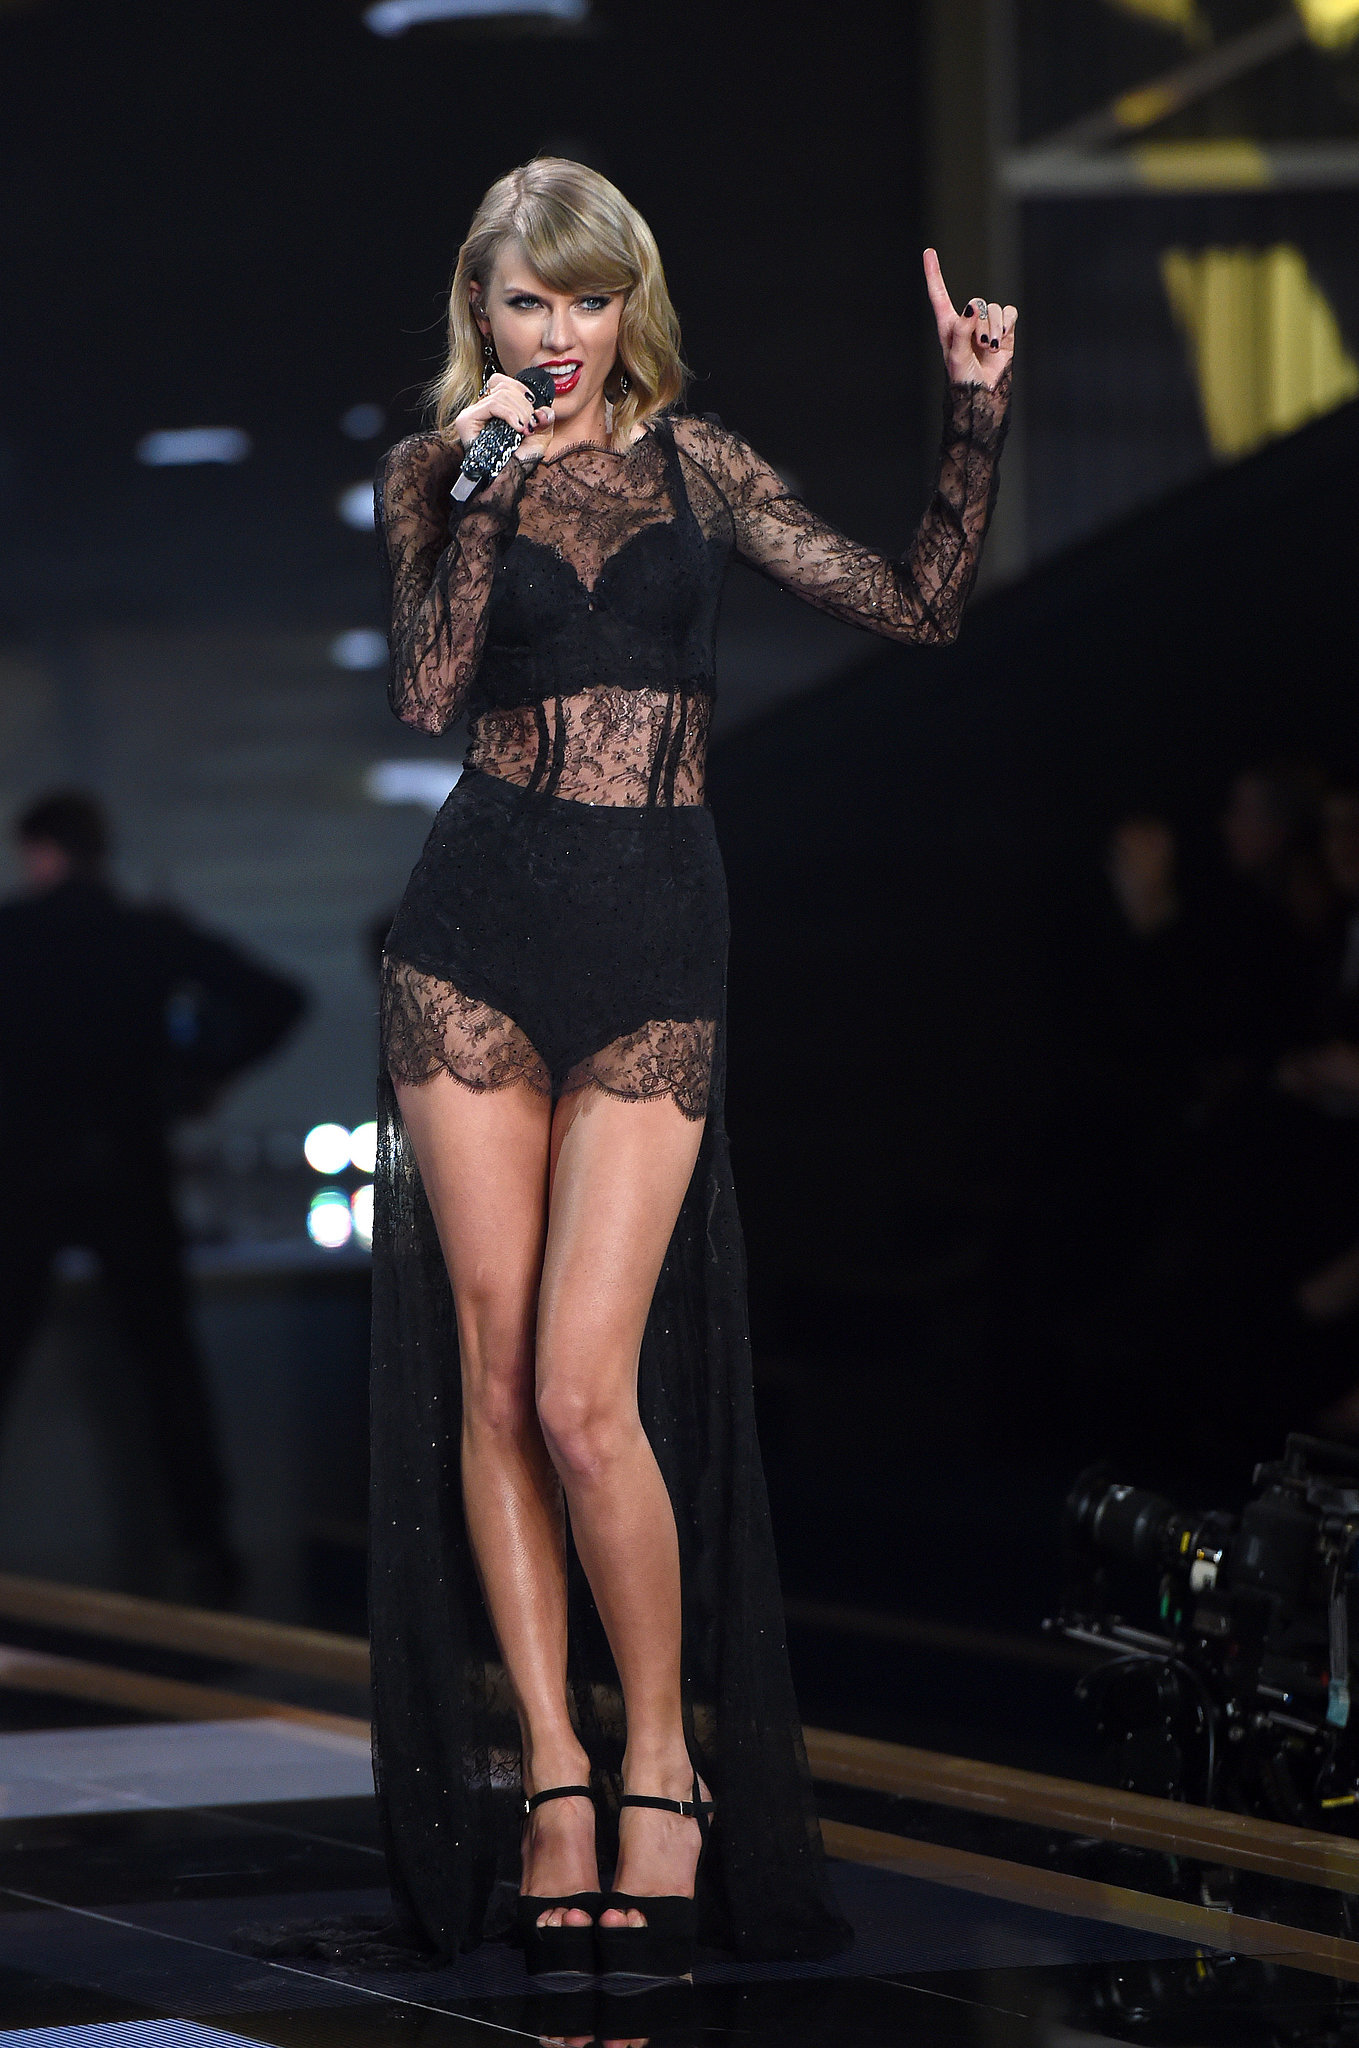 Victoria Fashion Show 2015 Taylor Swift Taylor Swift at the